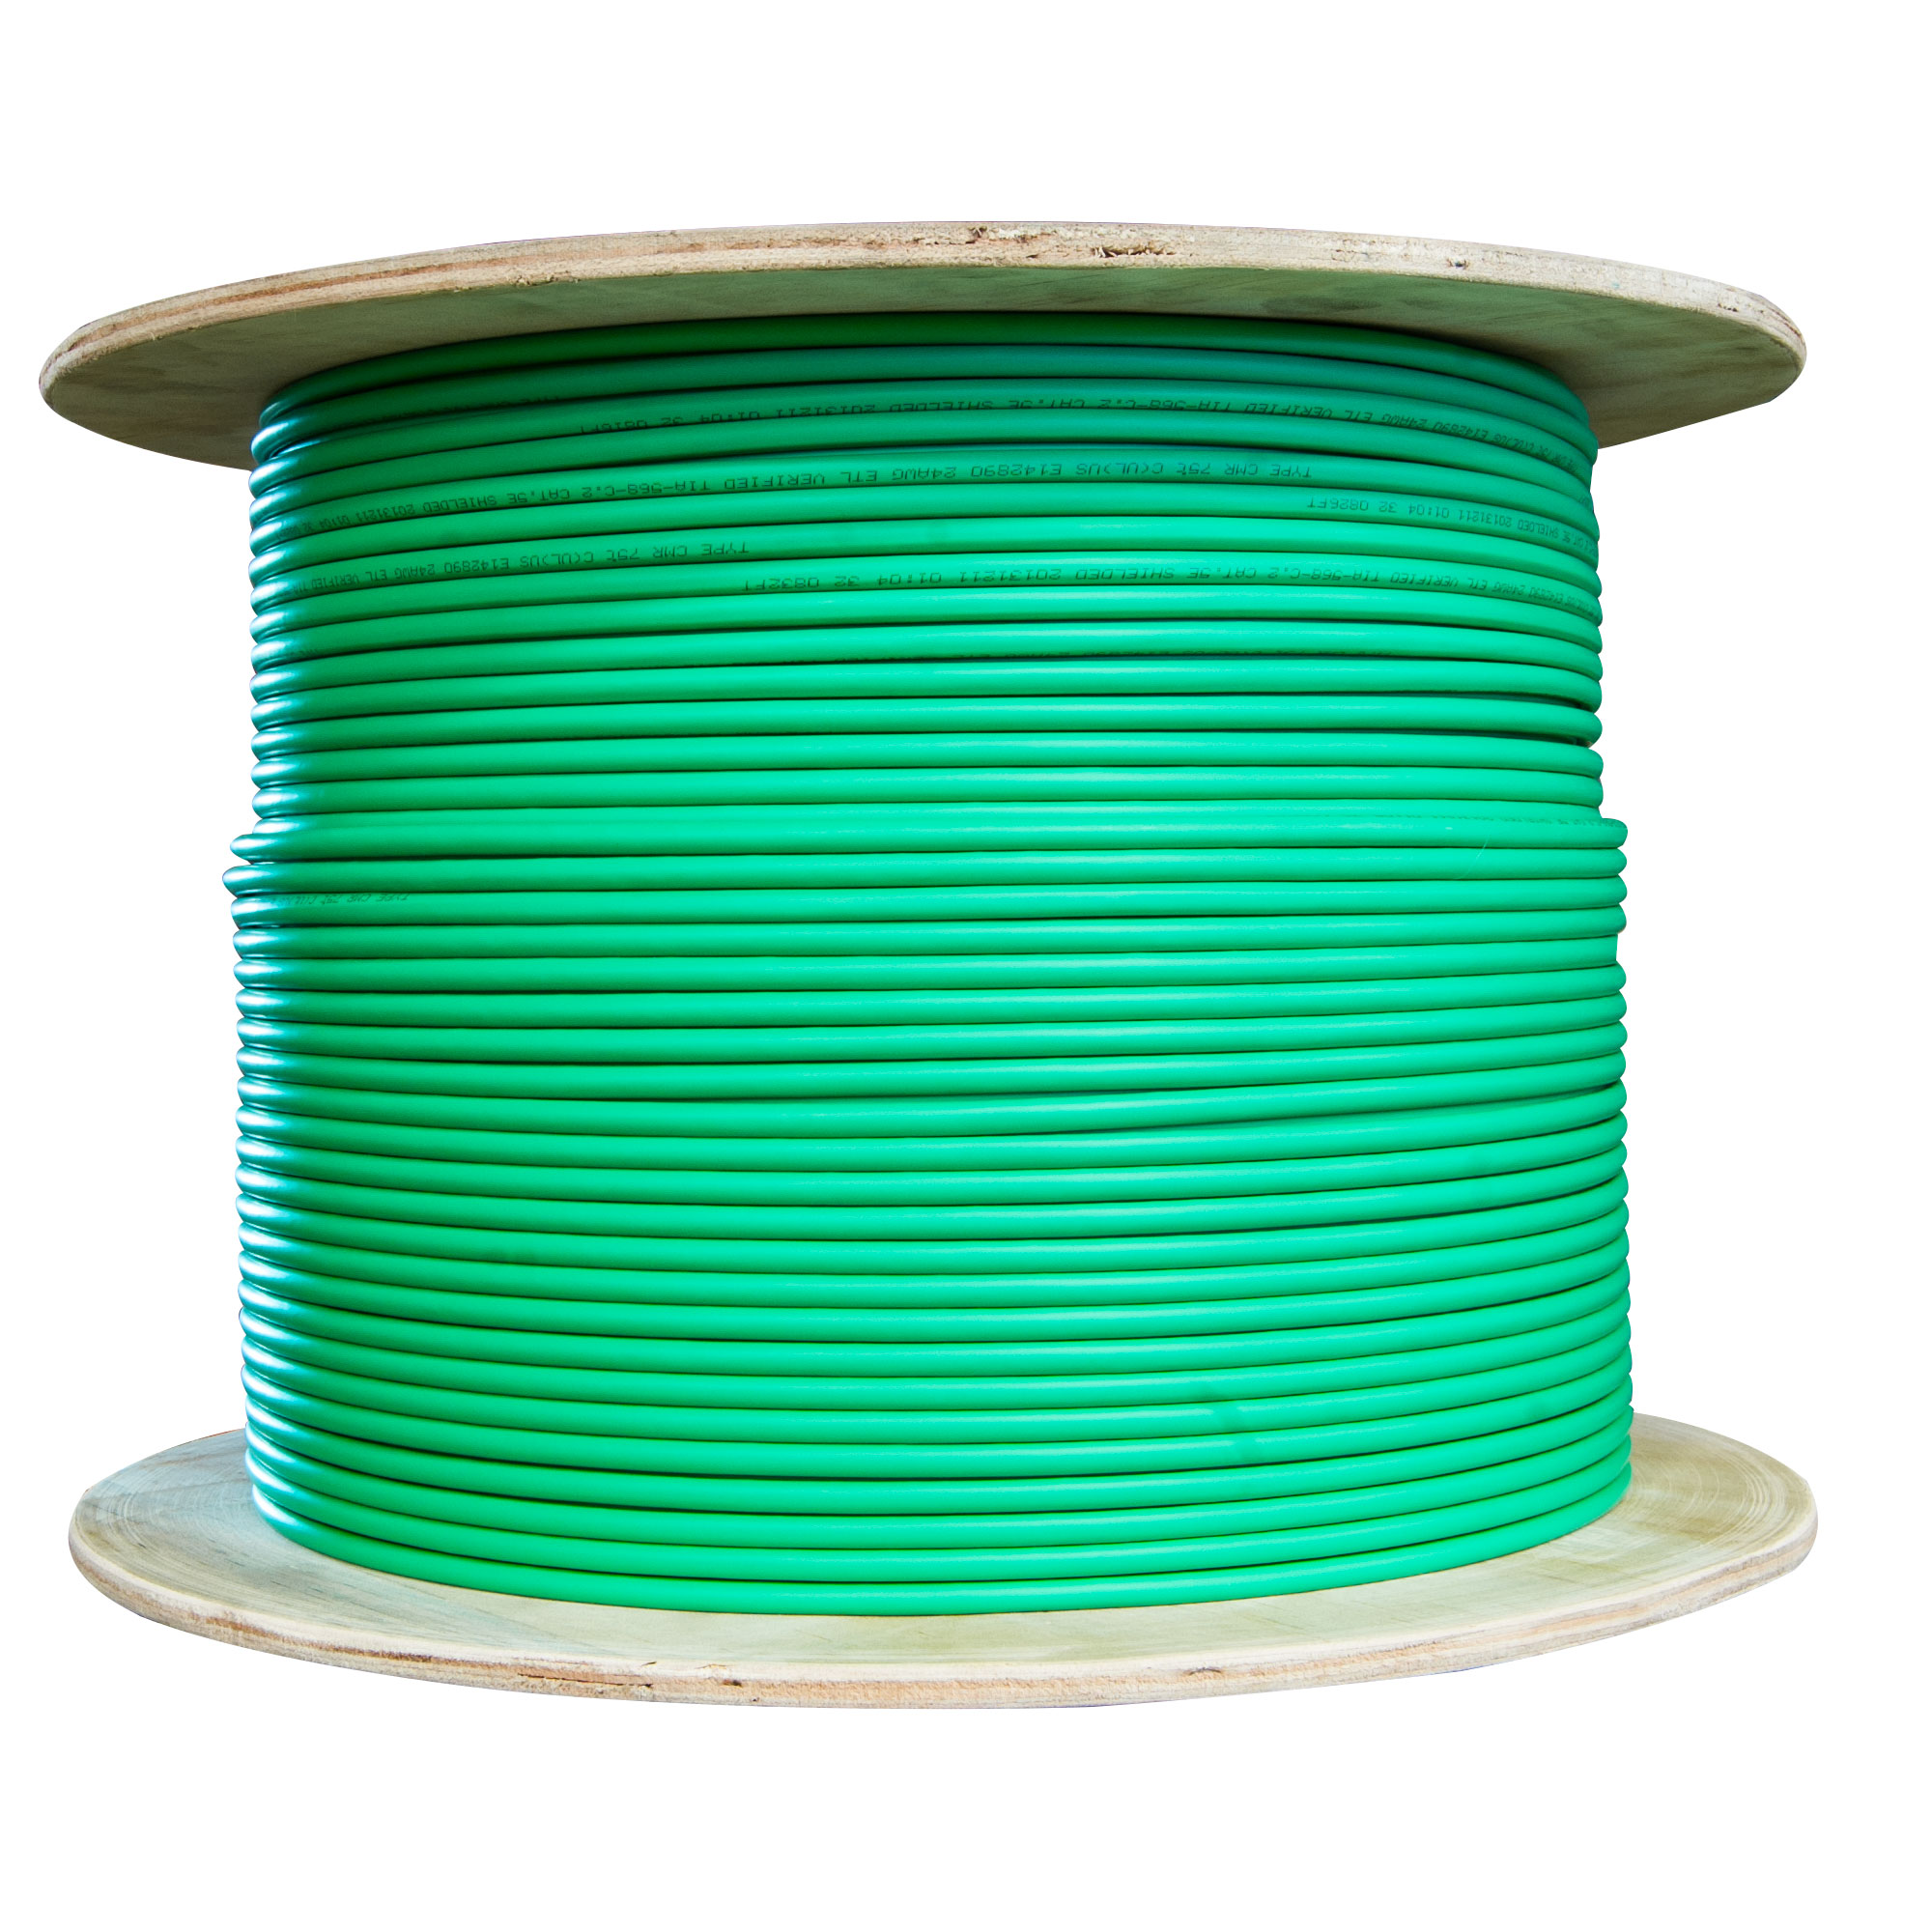 1000ft Shielded Spool Cat5e Green Ethernet Cable | CableWholesale